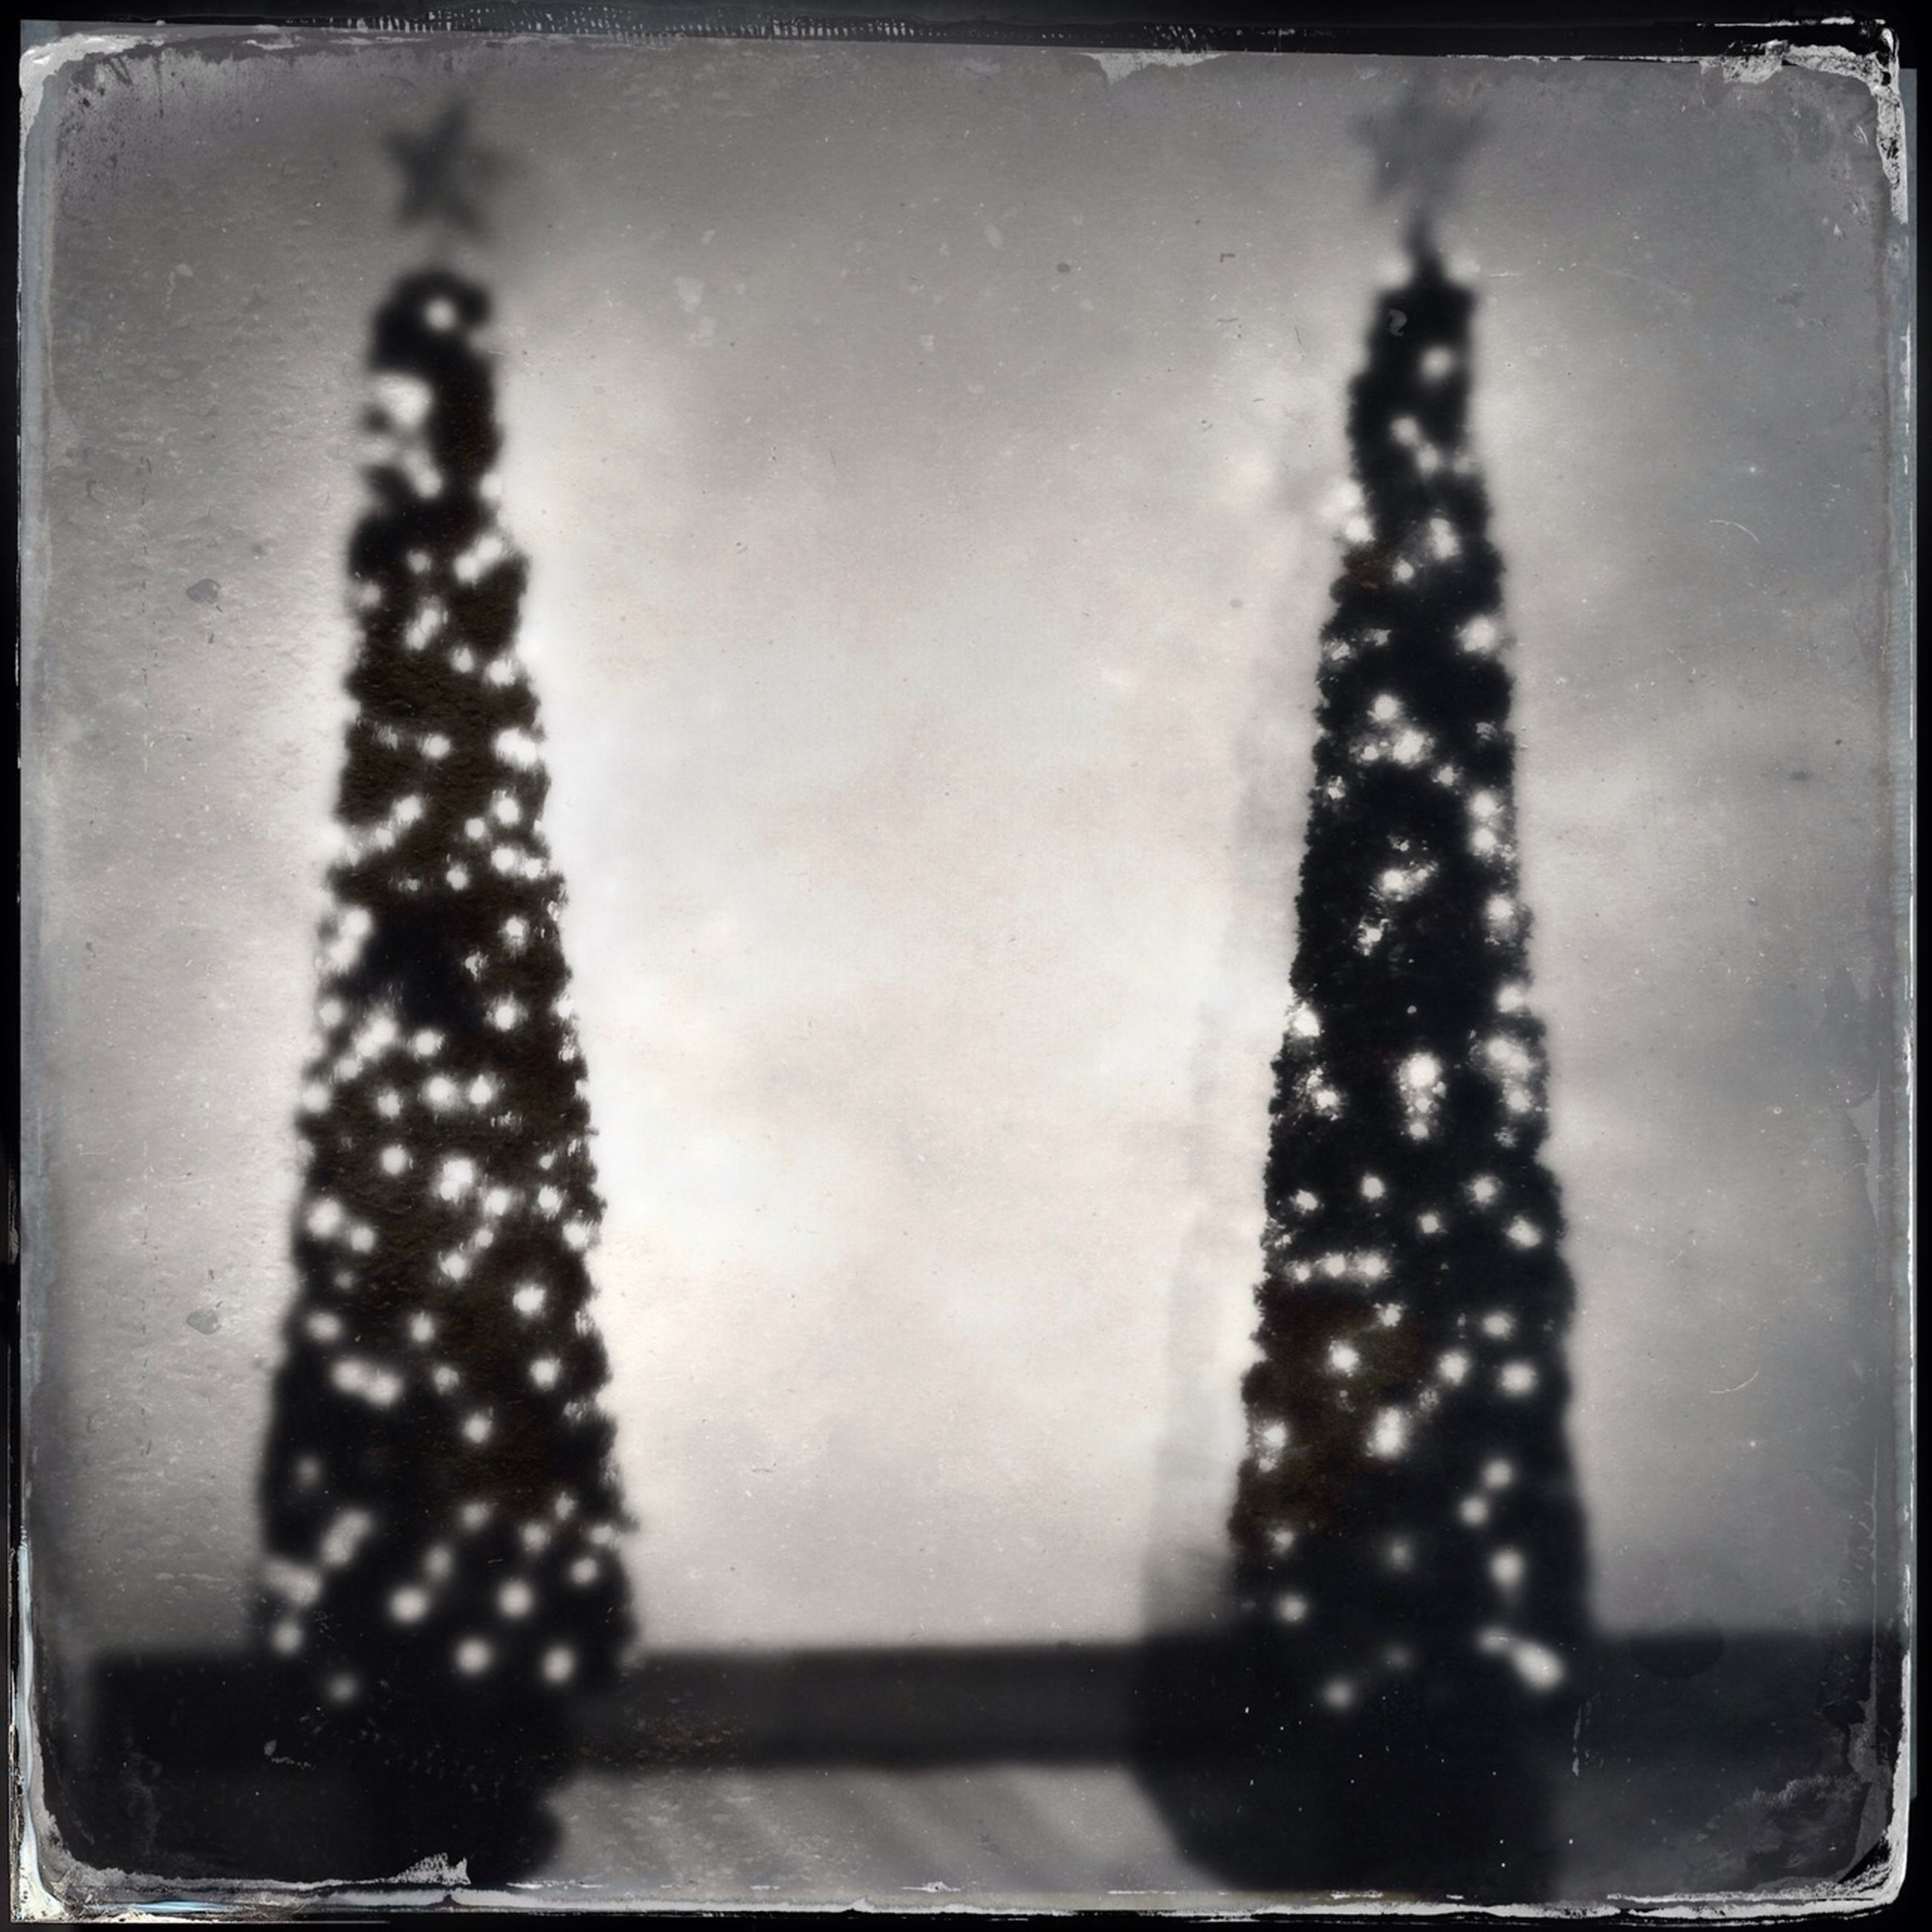 indoors, transfer print, auto post production filter, close-up, decoration, illuminated, pattern, hanging, lighting equipment, no people, design, glass - material, metal, christmas decoration, decor, christmas, black color, high angle view, still life, transparent